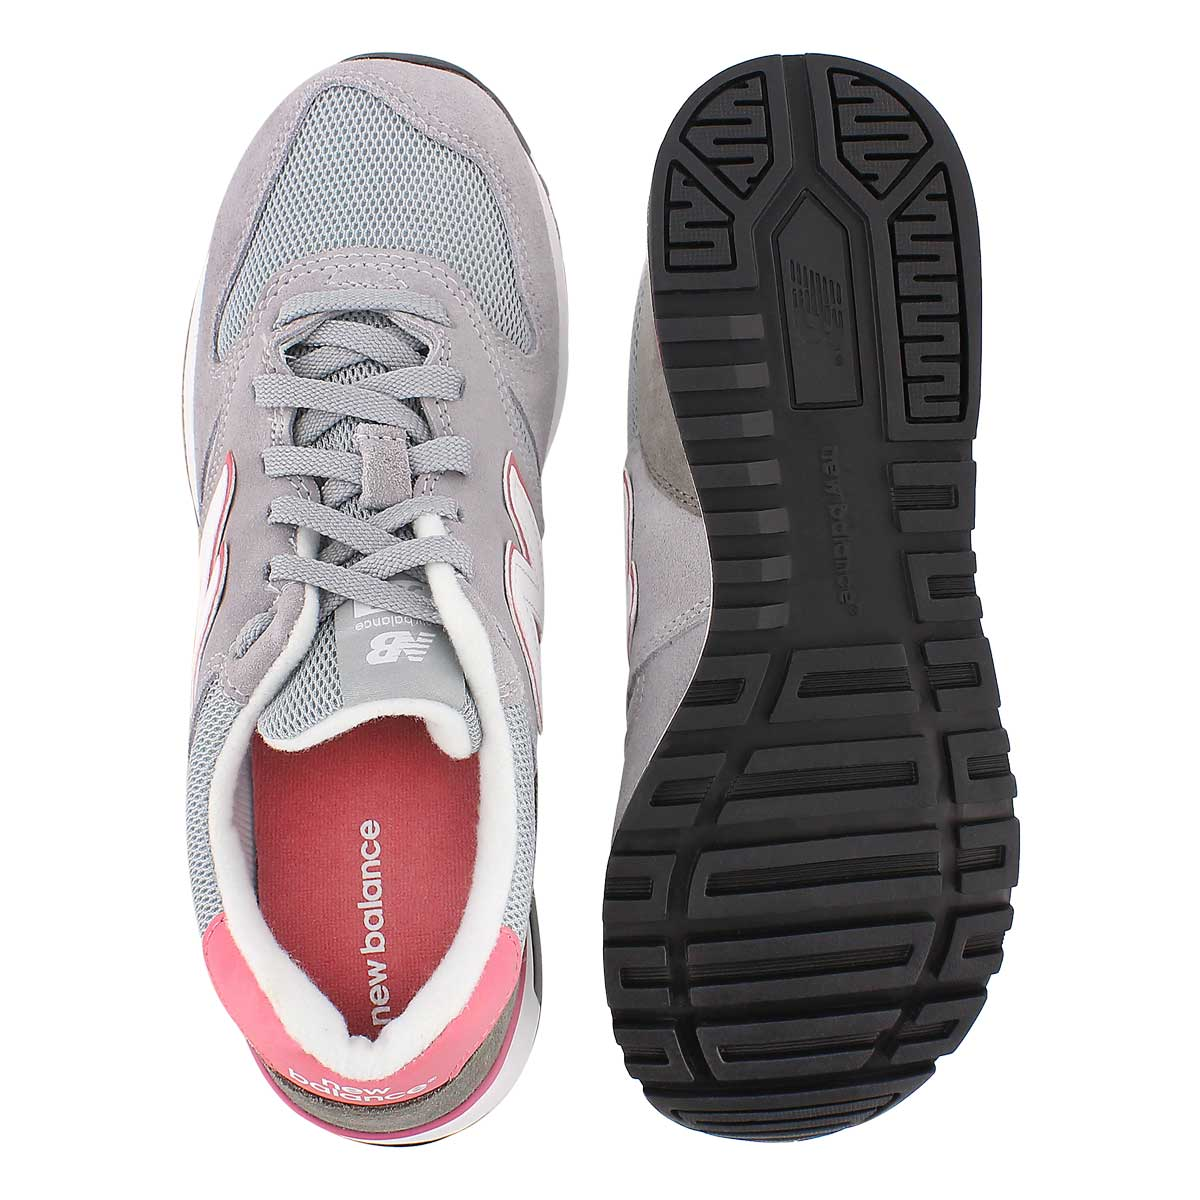 Lds 565 grey/pink lace up sneaker